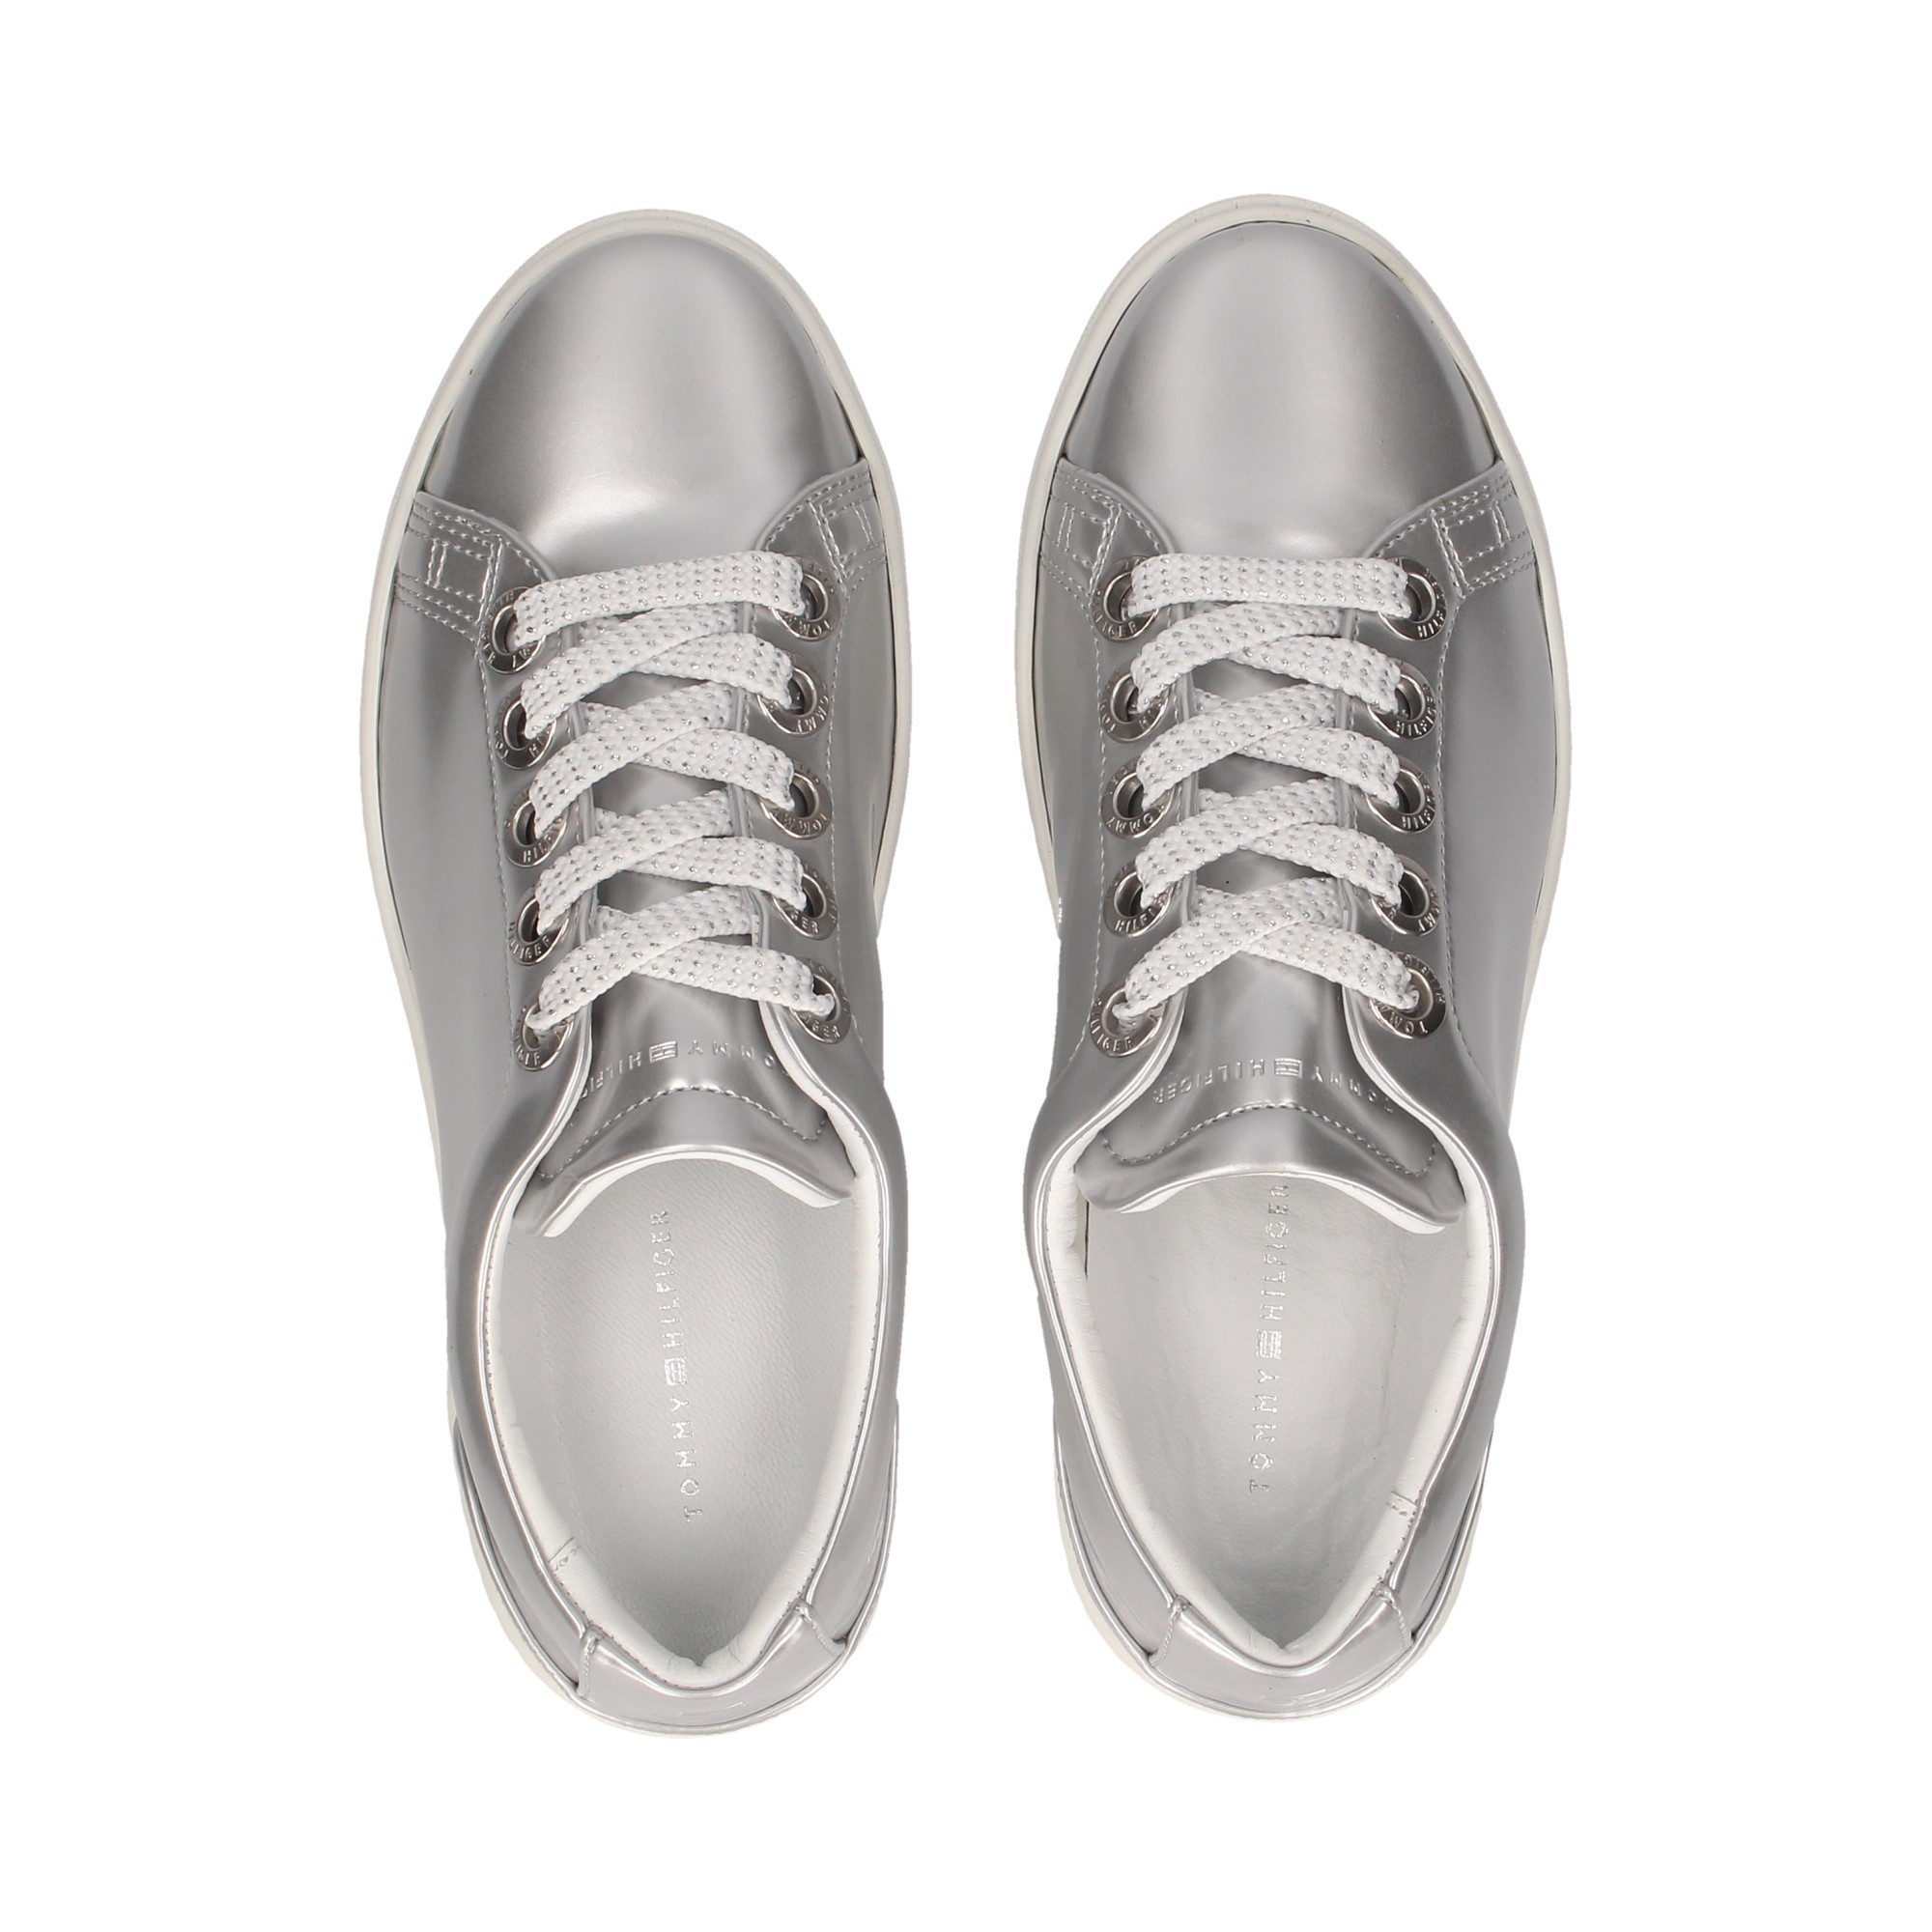 d69fed786a76f TOMMY HILFIGER Women's Sneakers FW03478 000 PLATA